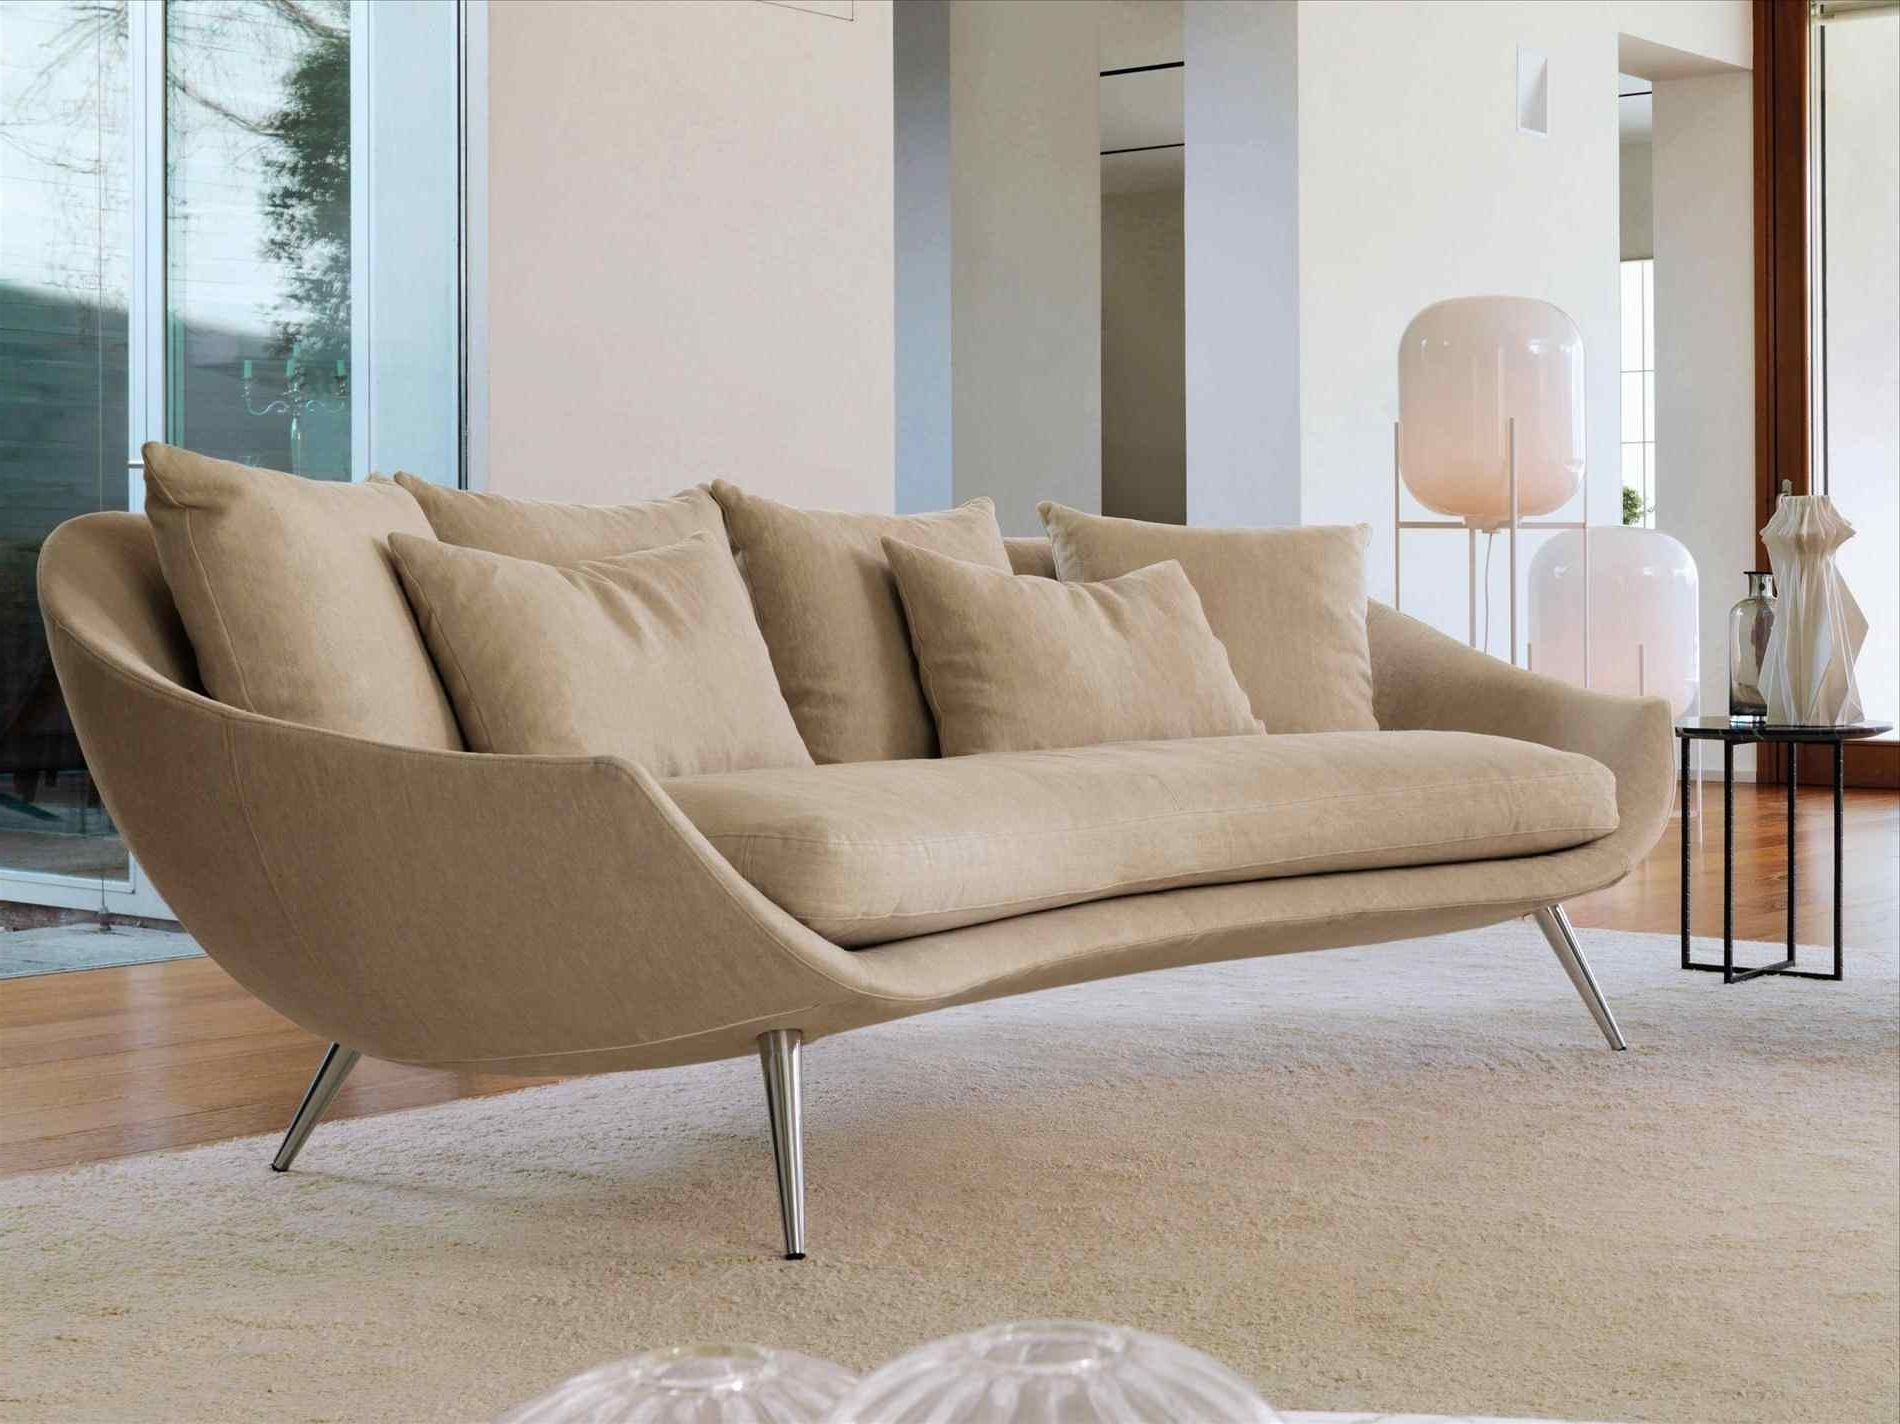 Removable Covers Sectional Sofas With Famous Sofa : Fabric Seater Cover Sectional Sectional Sofas With (View 3 of 15)